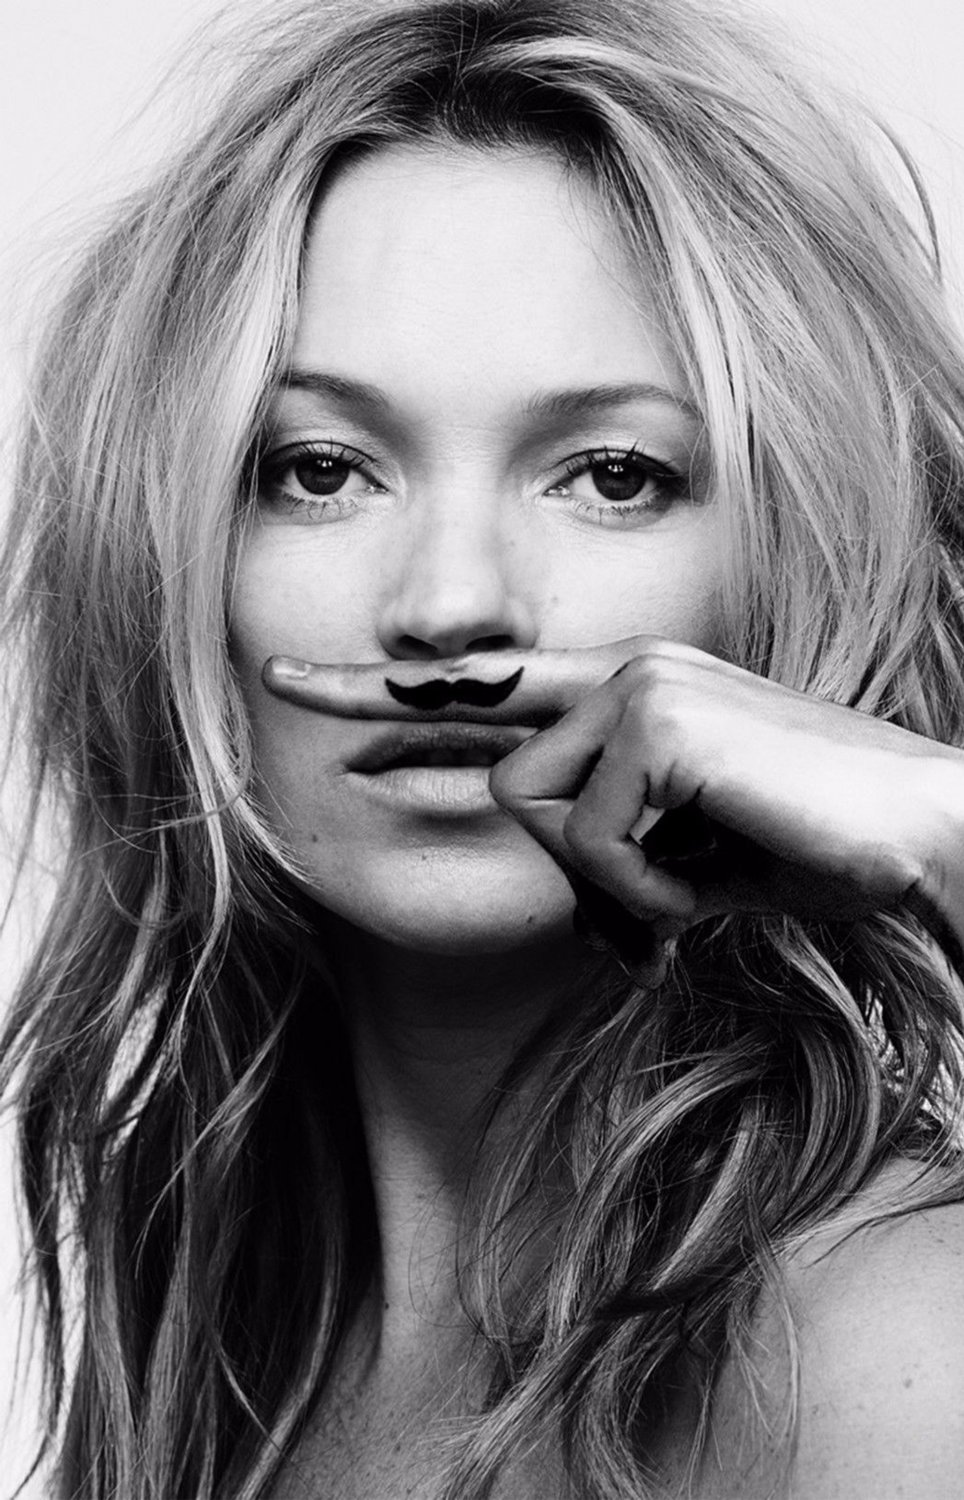 Kate Moss 13x19 inches Poster Print